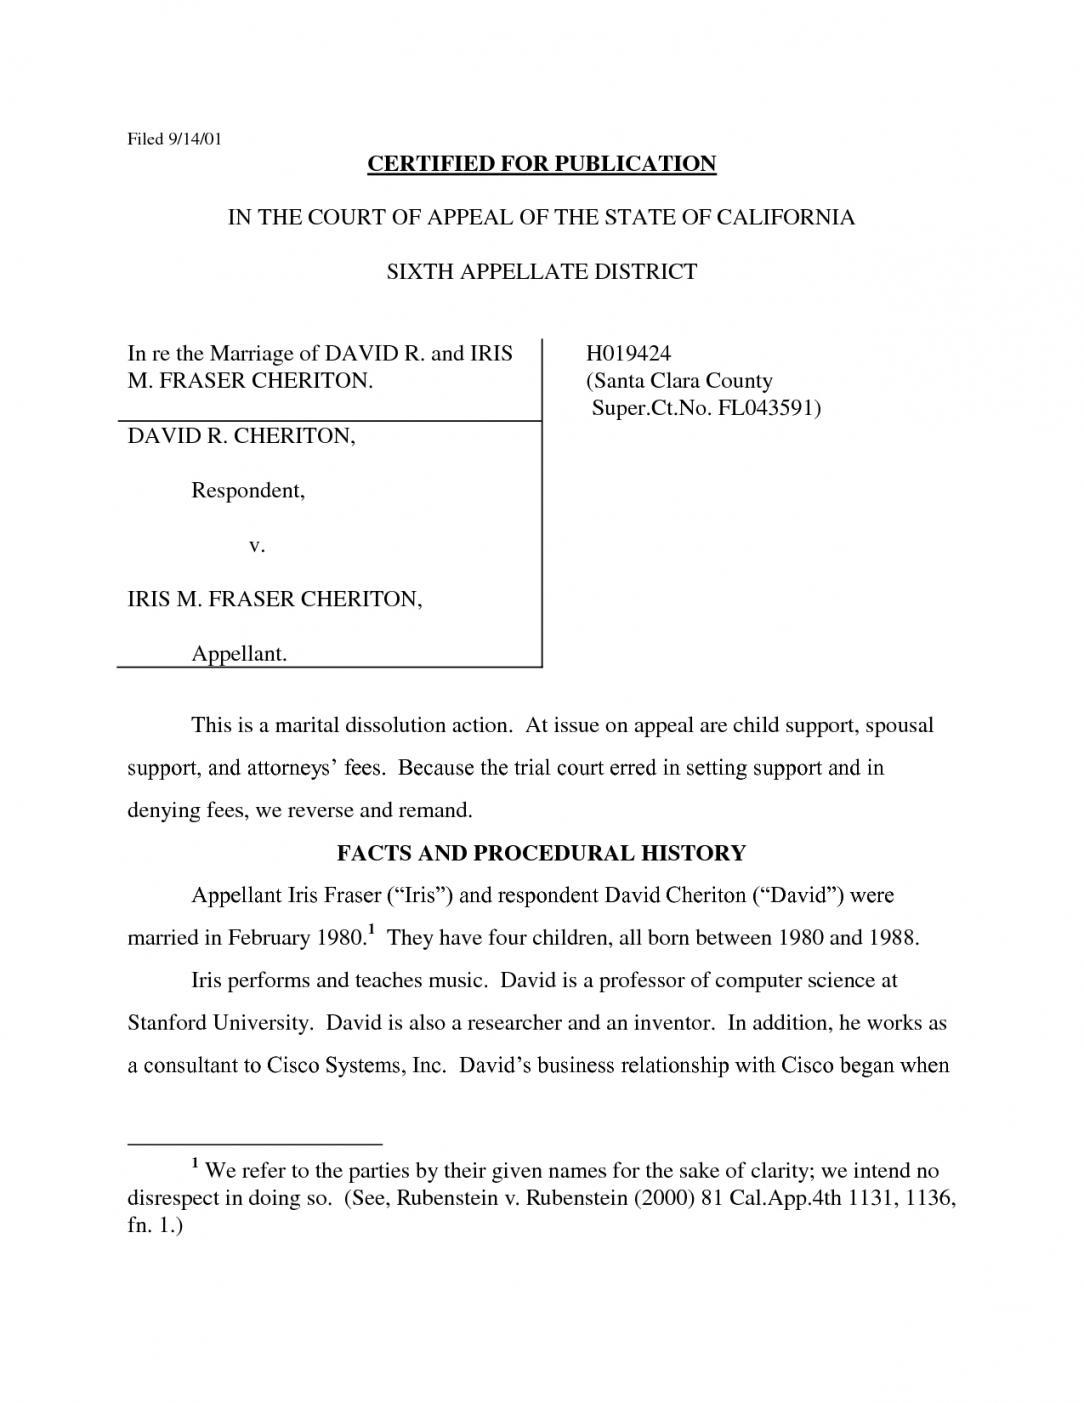 Postnuptial Agreement Template | Professional Template Intended